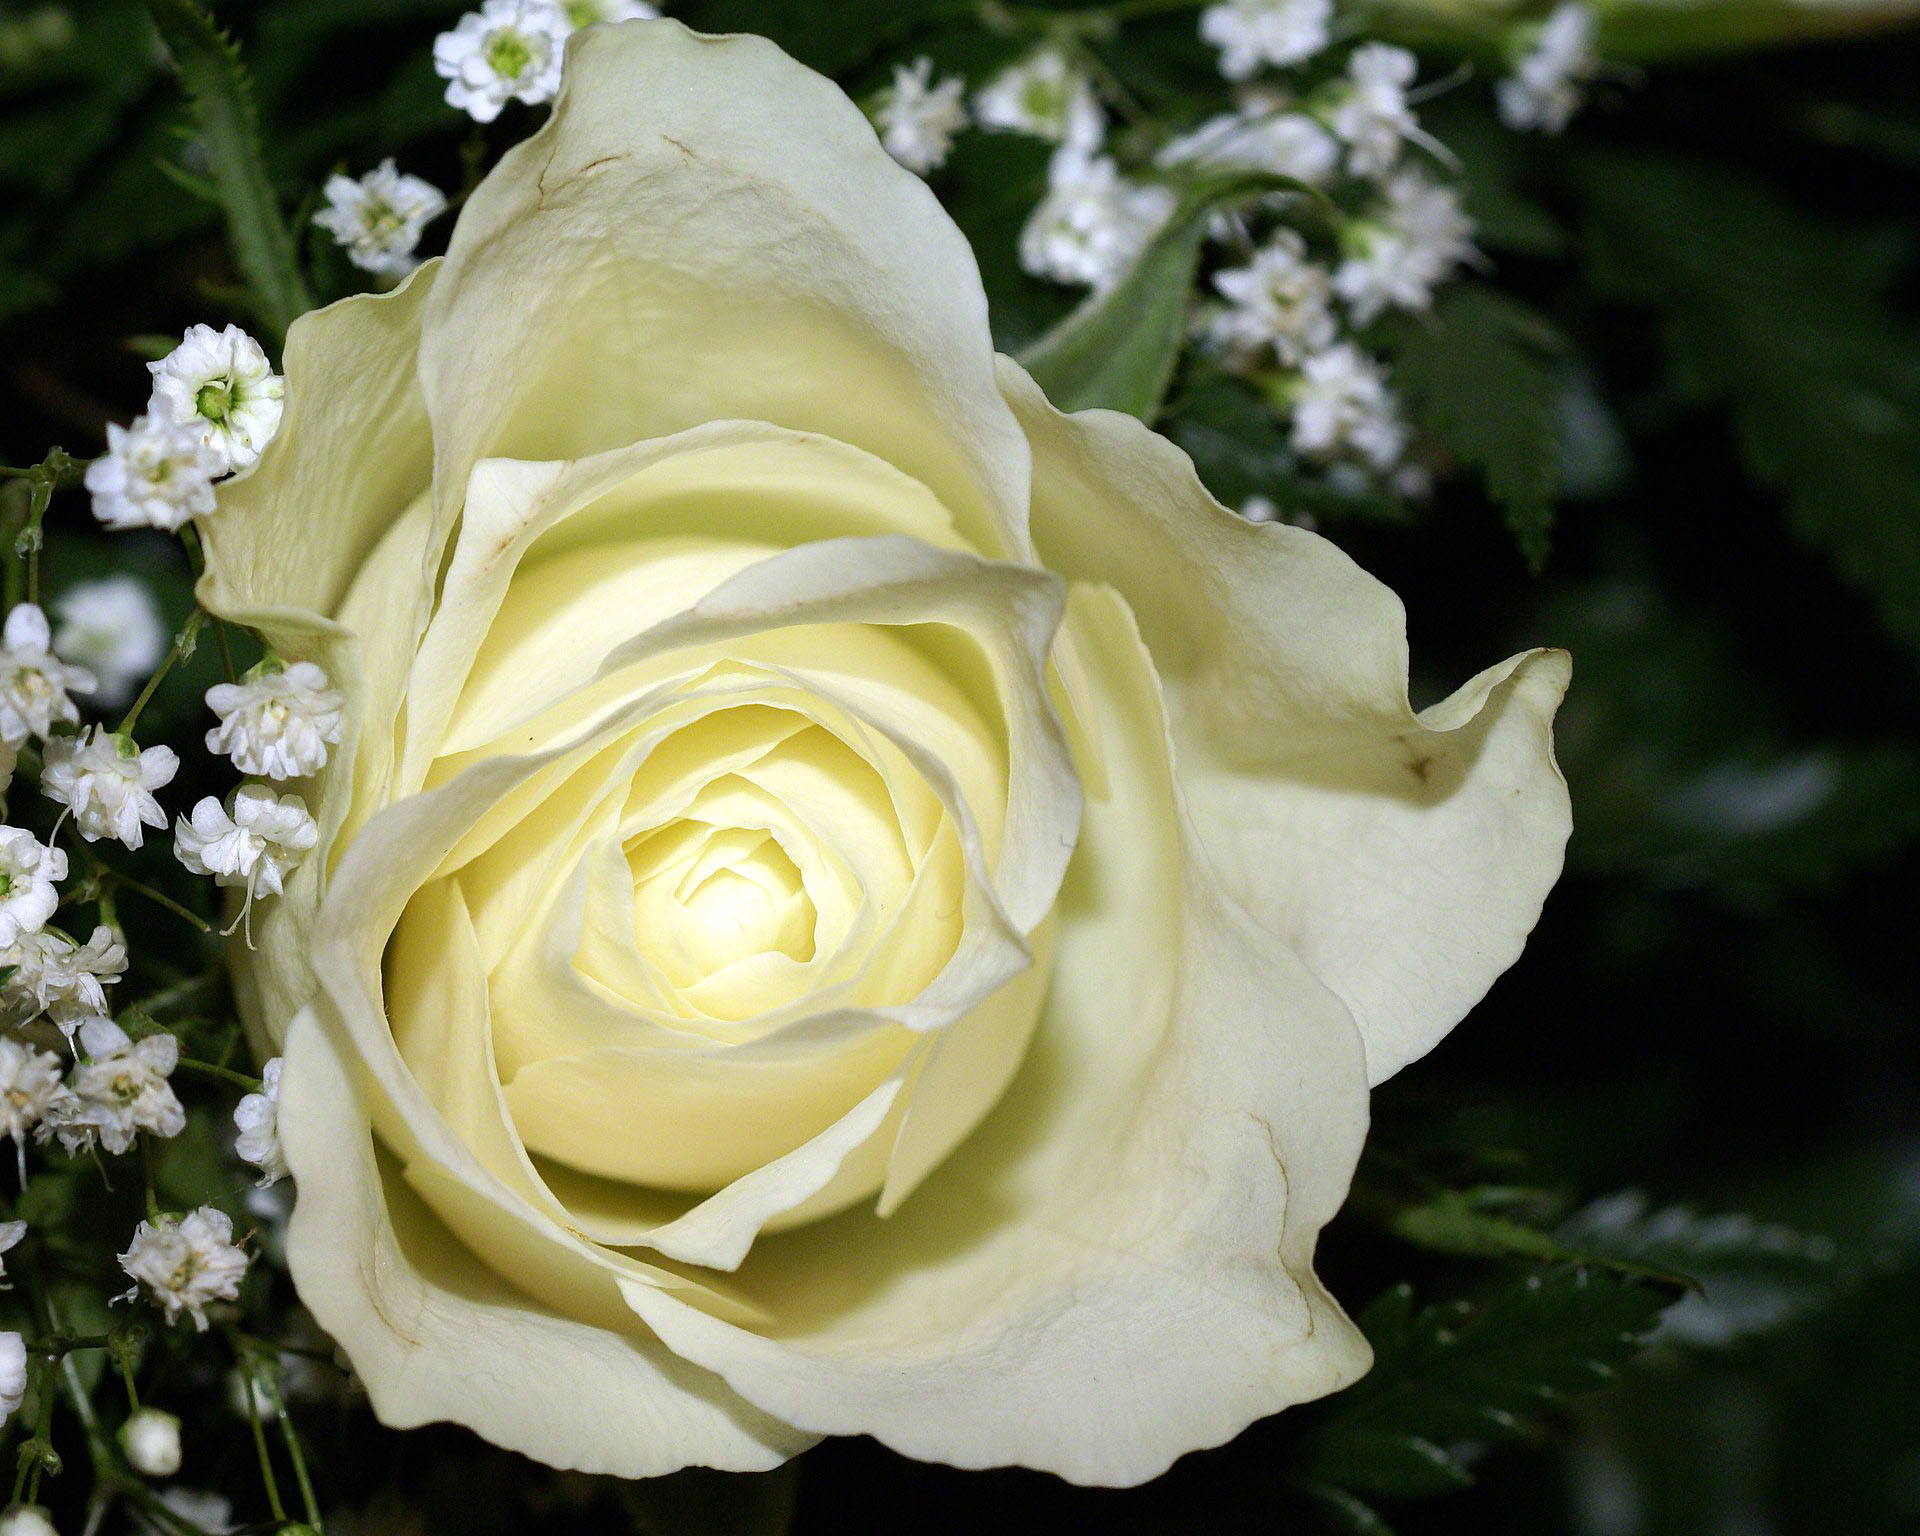 http://www.fabiovisentin.com/photography/photo/12/white-rose-bouquet-0266513.jpg